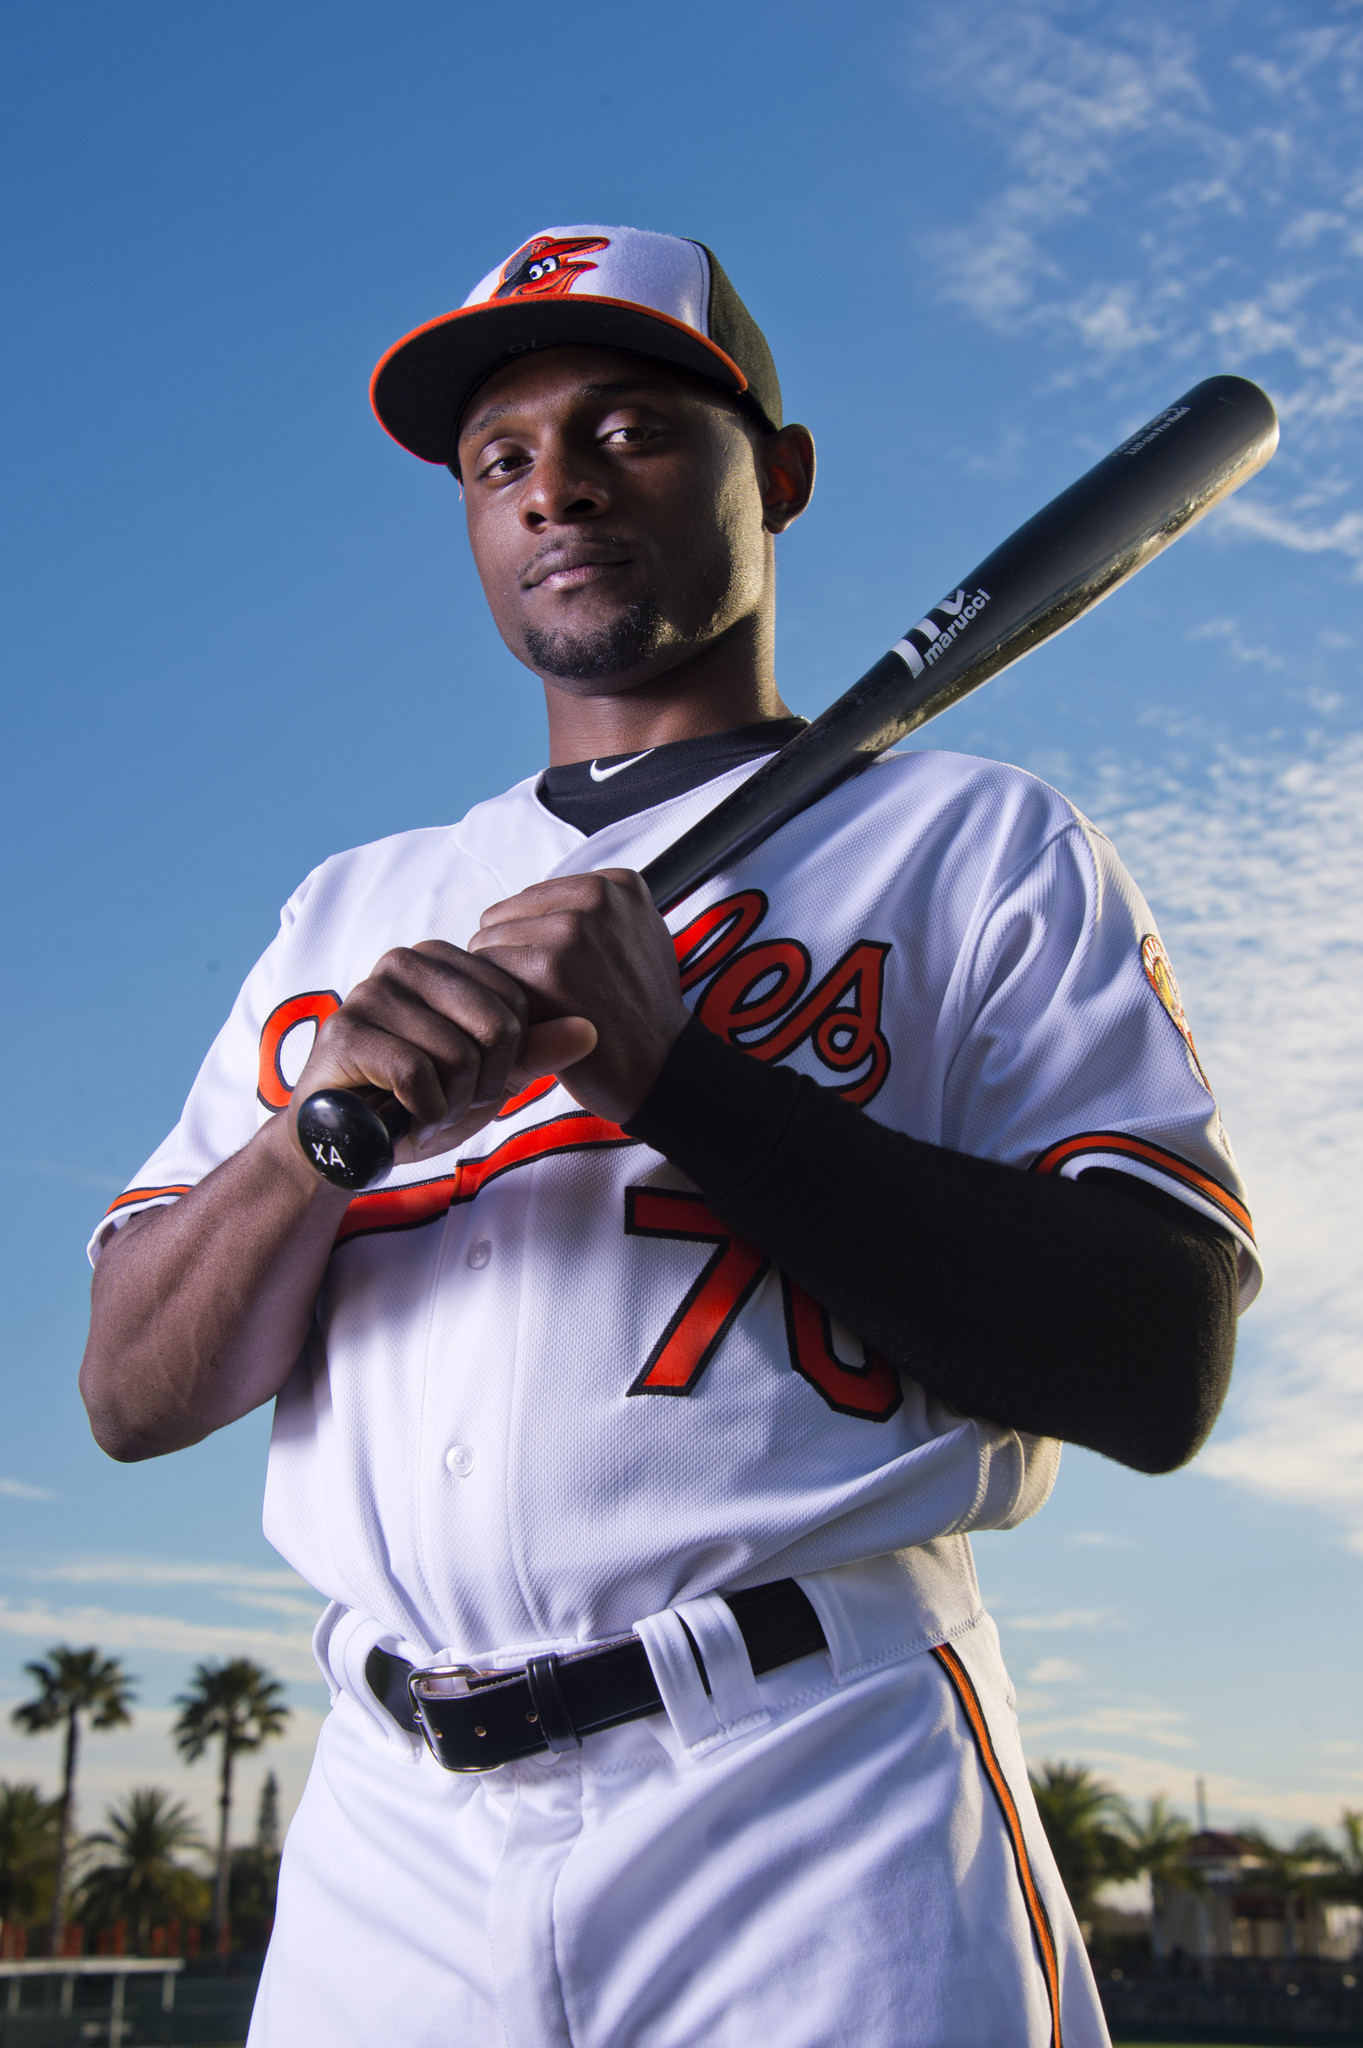 Bal-orioles-minor-leaguer-xavier-avery-makes-catch-of-the-year-candidate-20160626